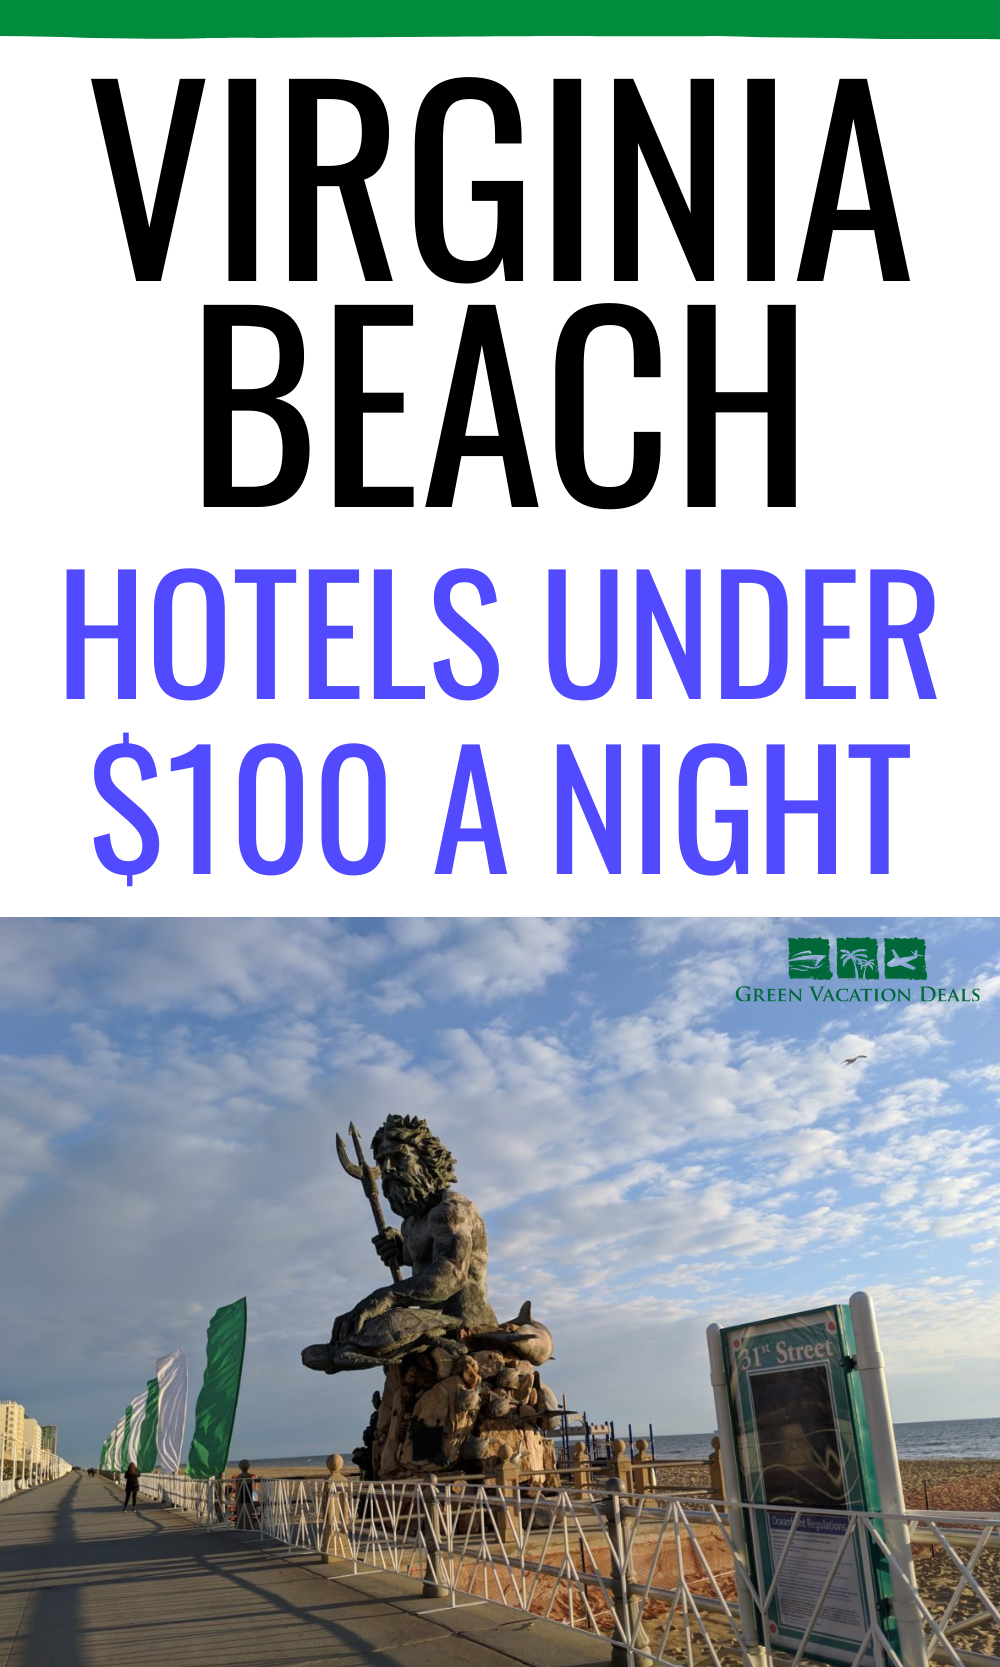 Discounted nightly rates at Virginia Beach hotels under $100/night: Hampton Inn Oceanfront,, Ocean Sands Resorts, Comfort Suites Beachfront, Turtle Cay, etc. Great travel hacks for a Virginia Beach vacation. #VirginiaBeach #Virginia #Beach #BeachTrip #BeachVacation #hoteldeals #traveldeals #travelhacks #travelsale #budgettravel #budgettraveler #cheaptravel #beachbabe #oceanfront #trip